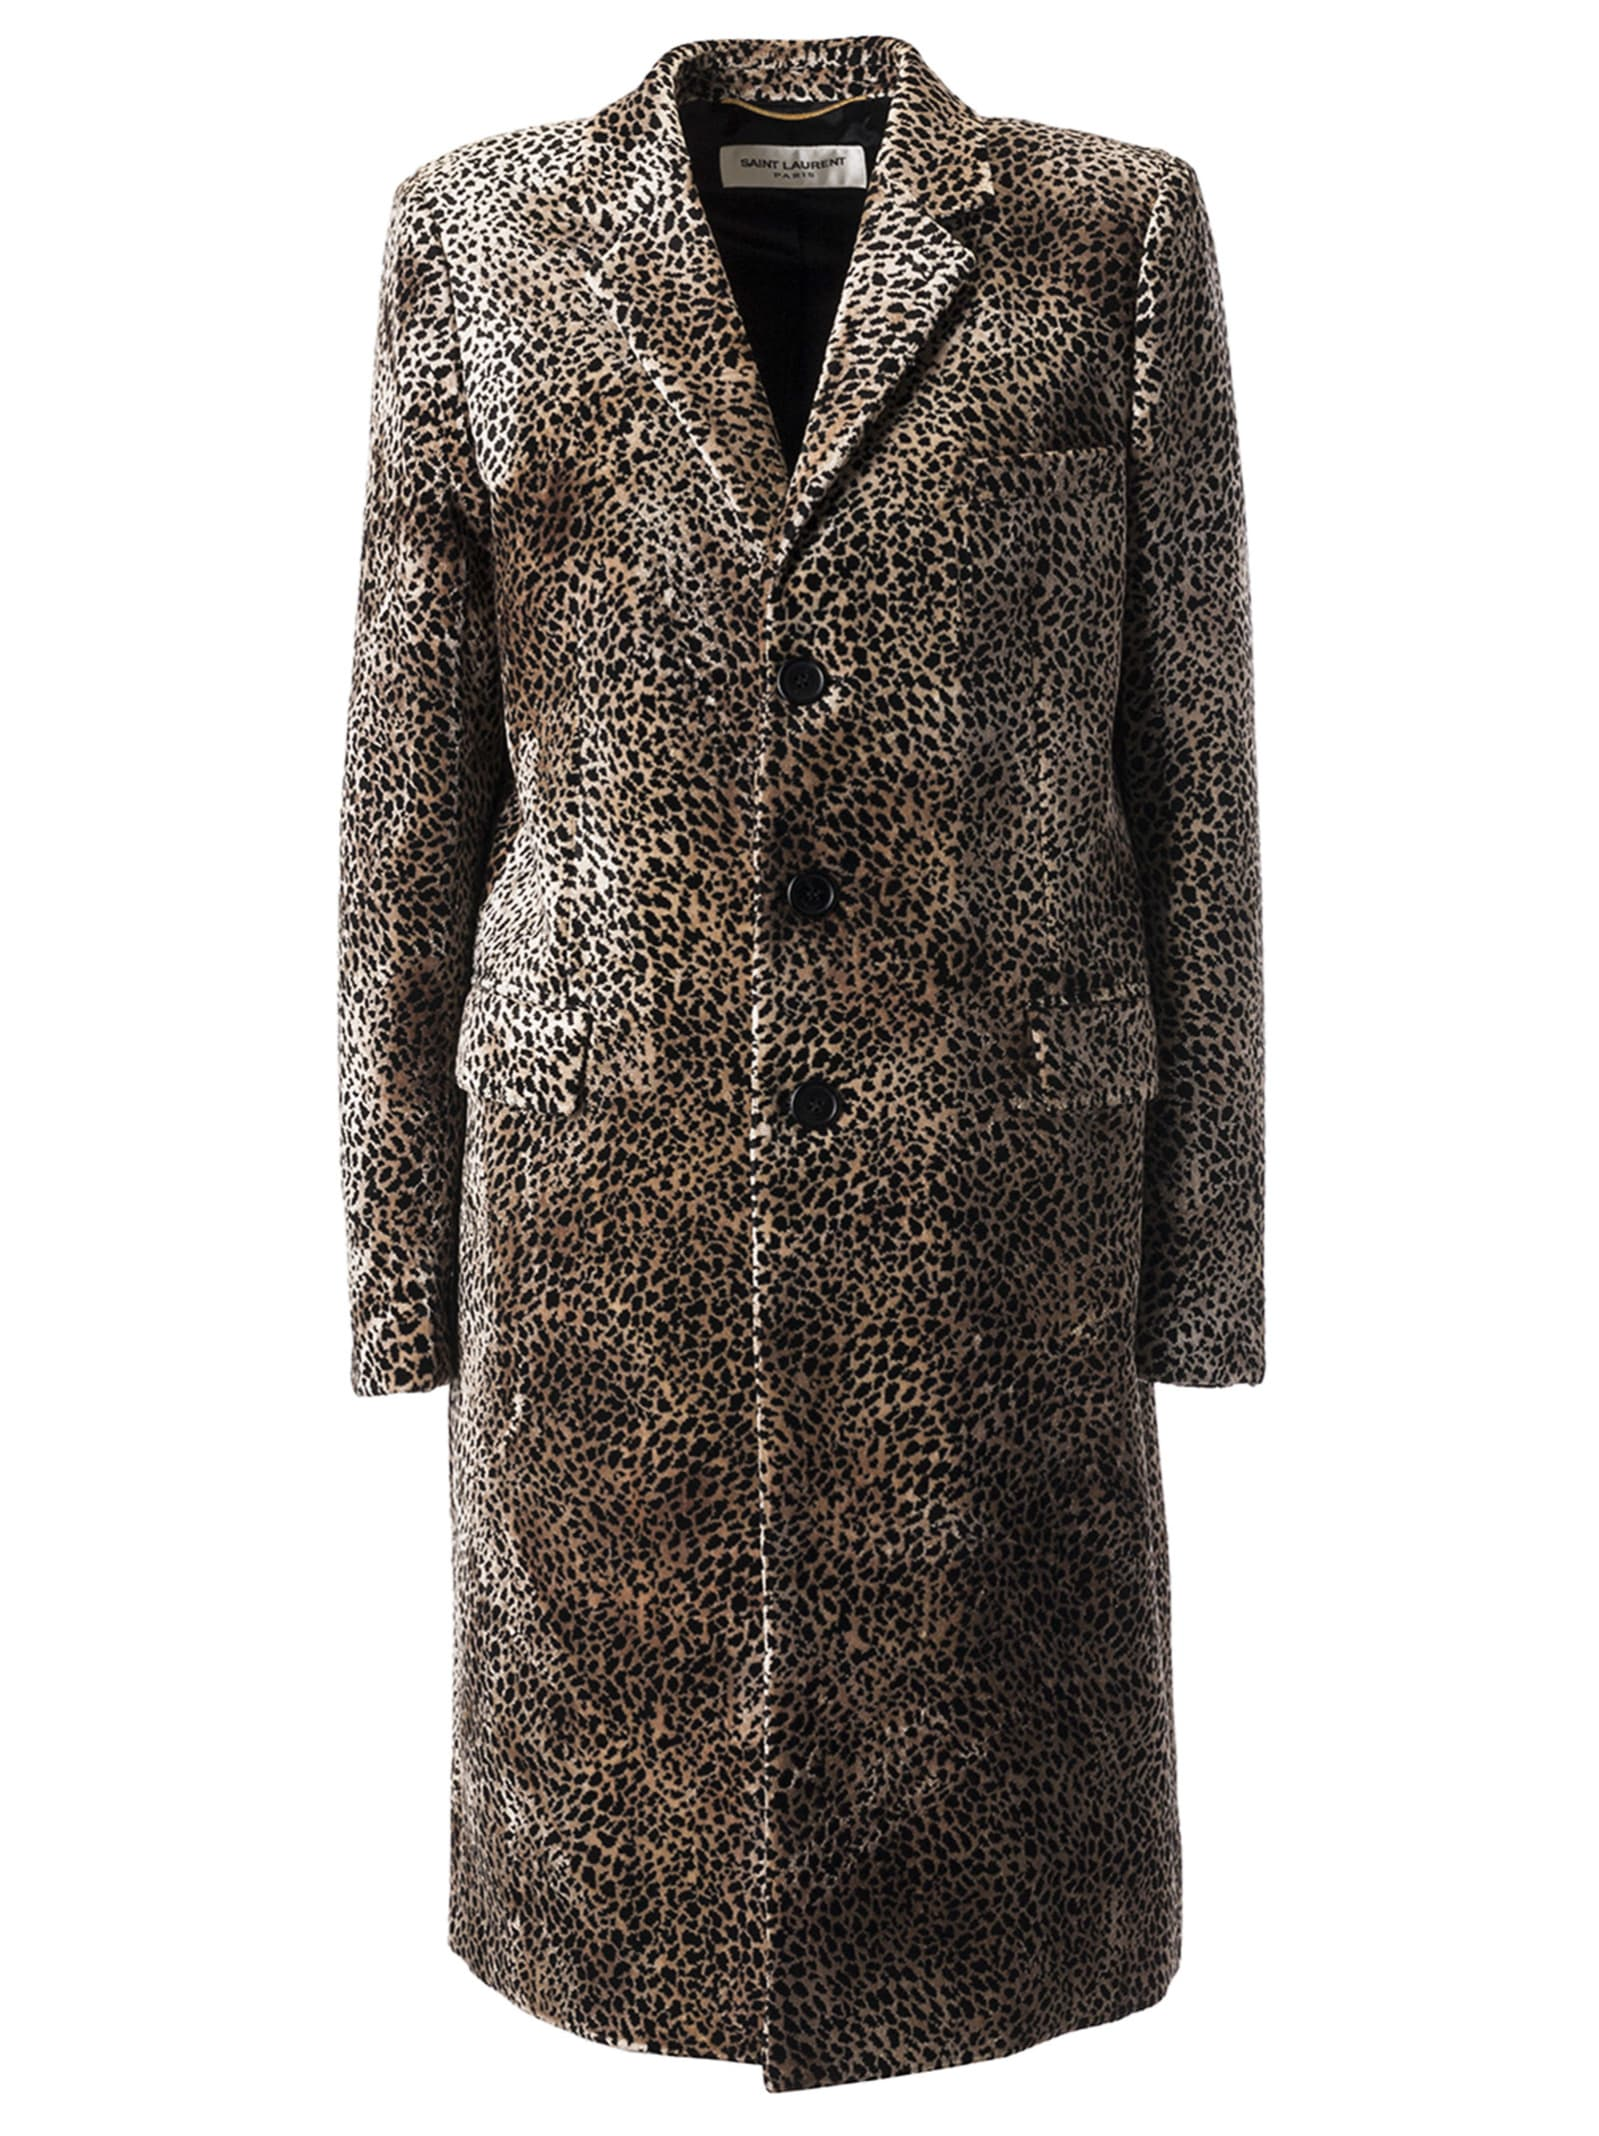 Saint Laurent Leopard Pattern Coat